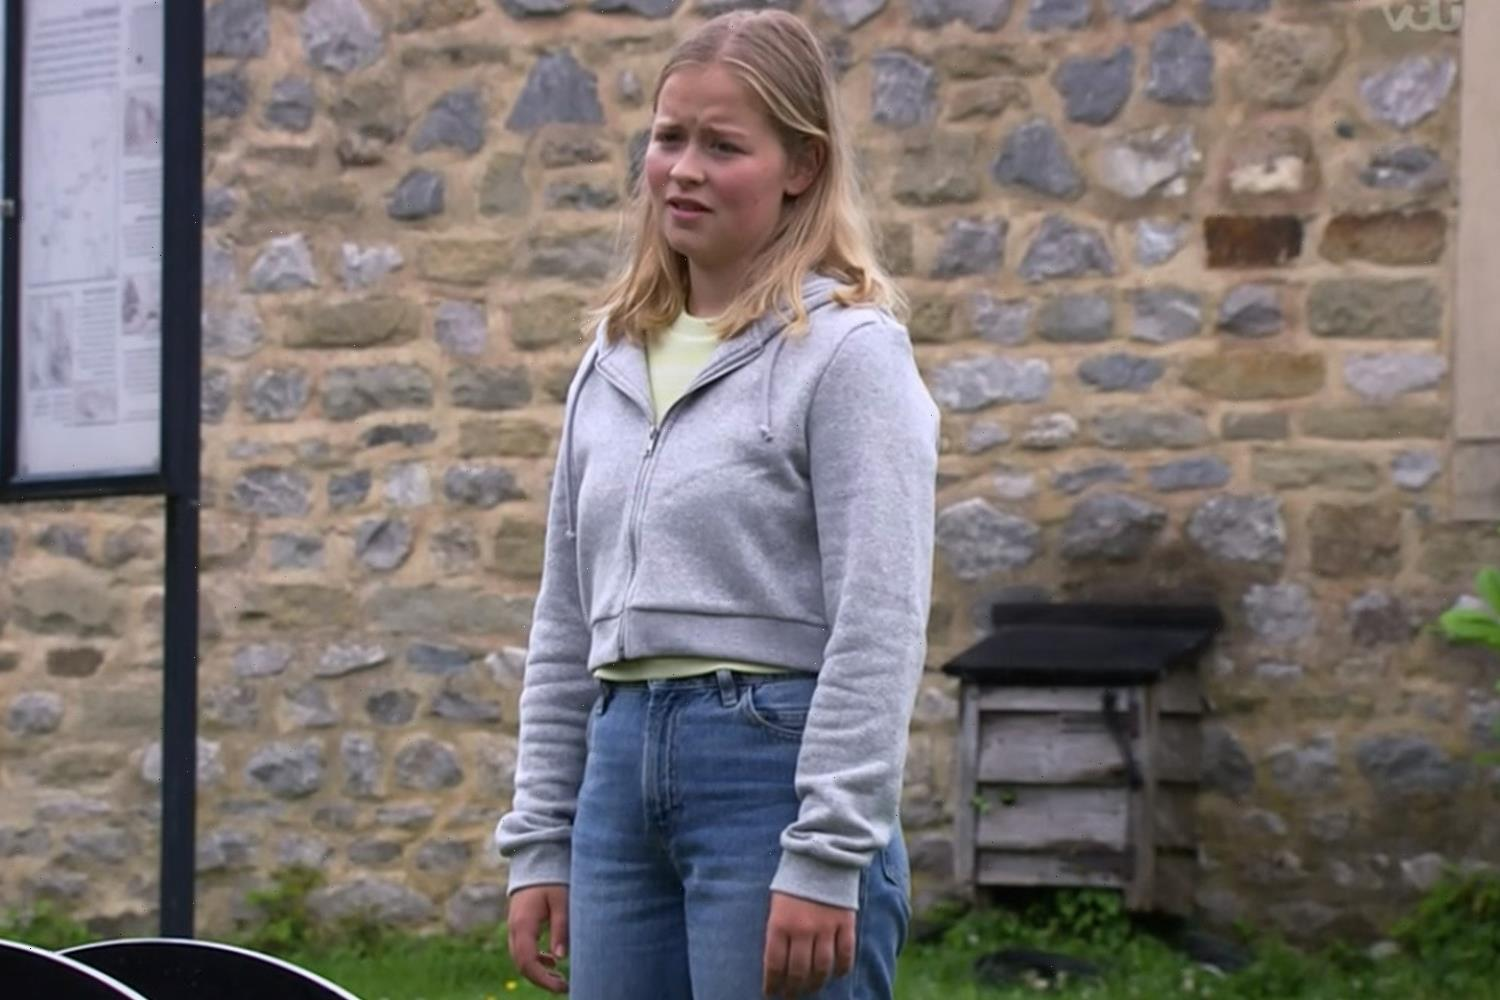 Emmerdale fans disgusted as alcoholic Liv Flaherty resorts to drinking AGAIN